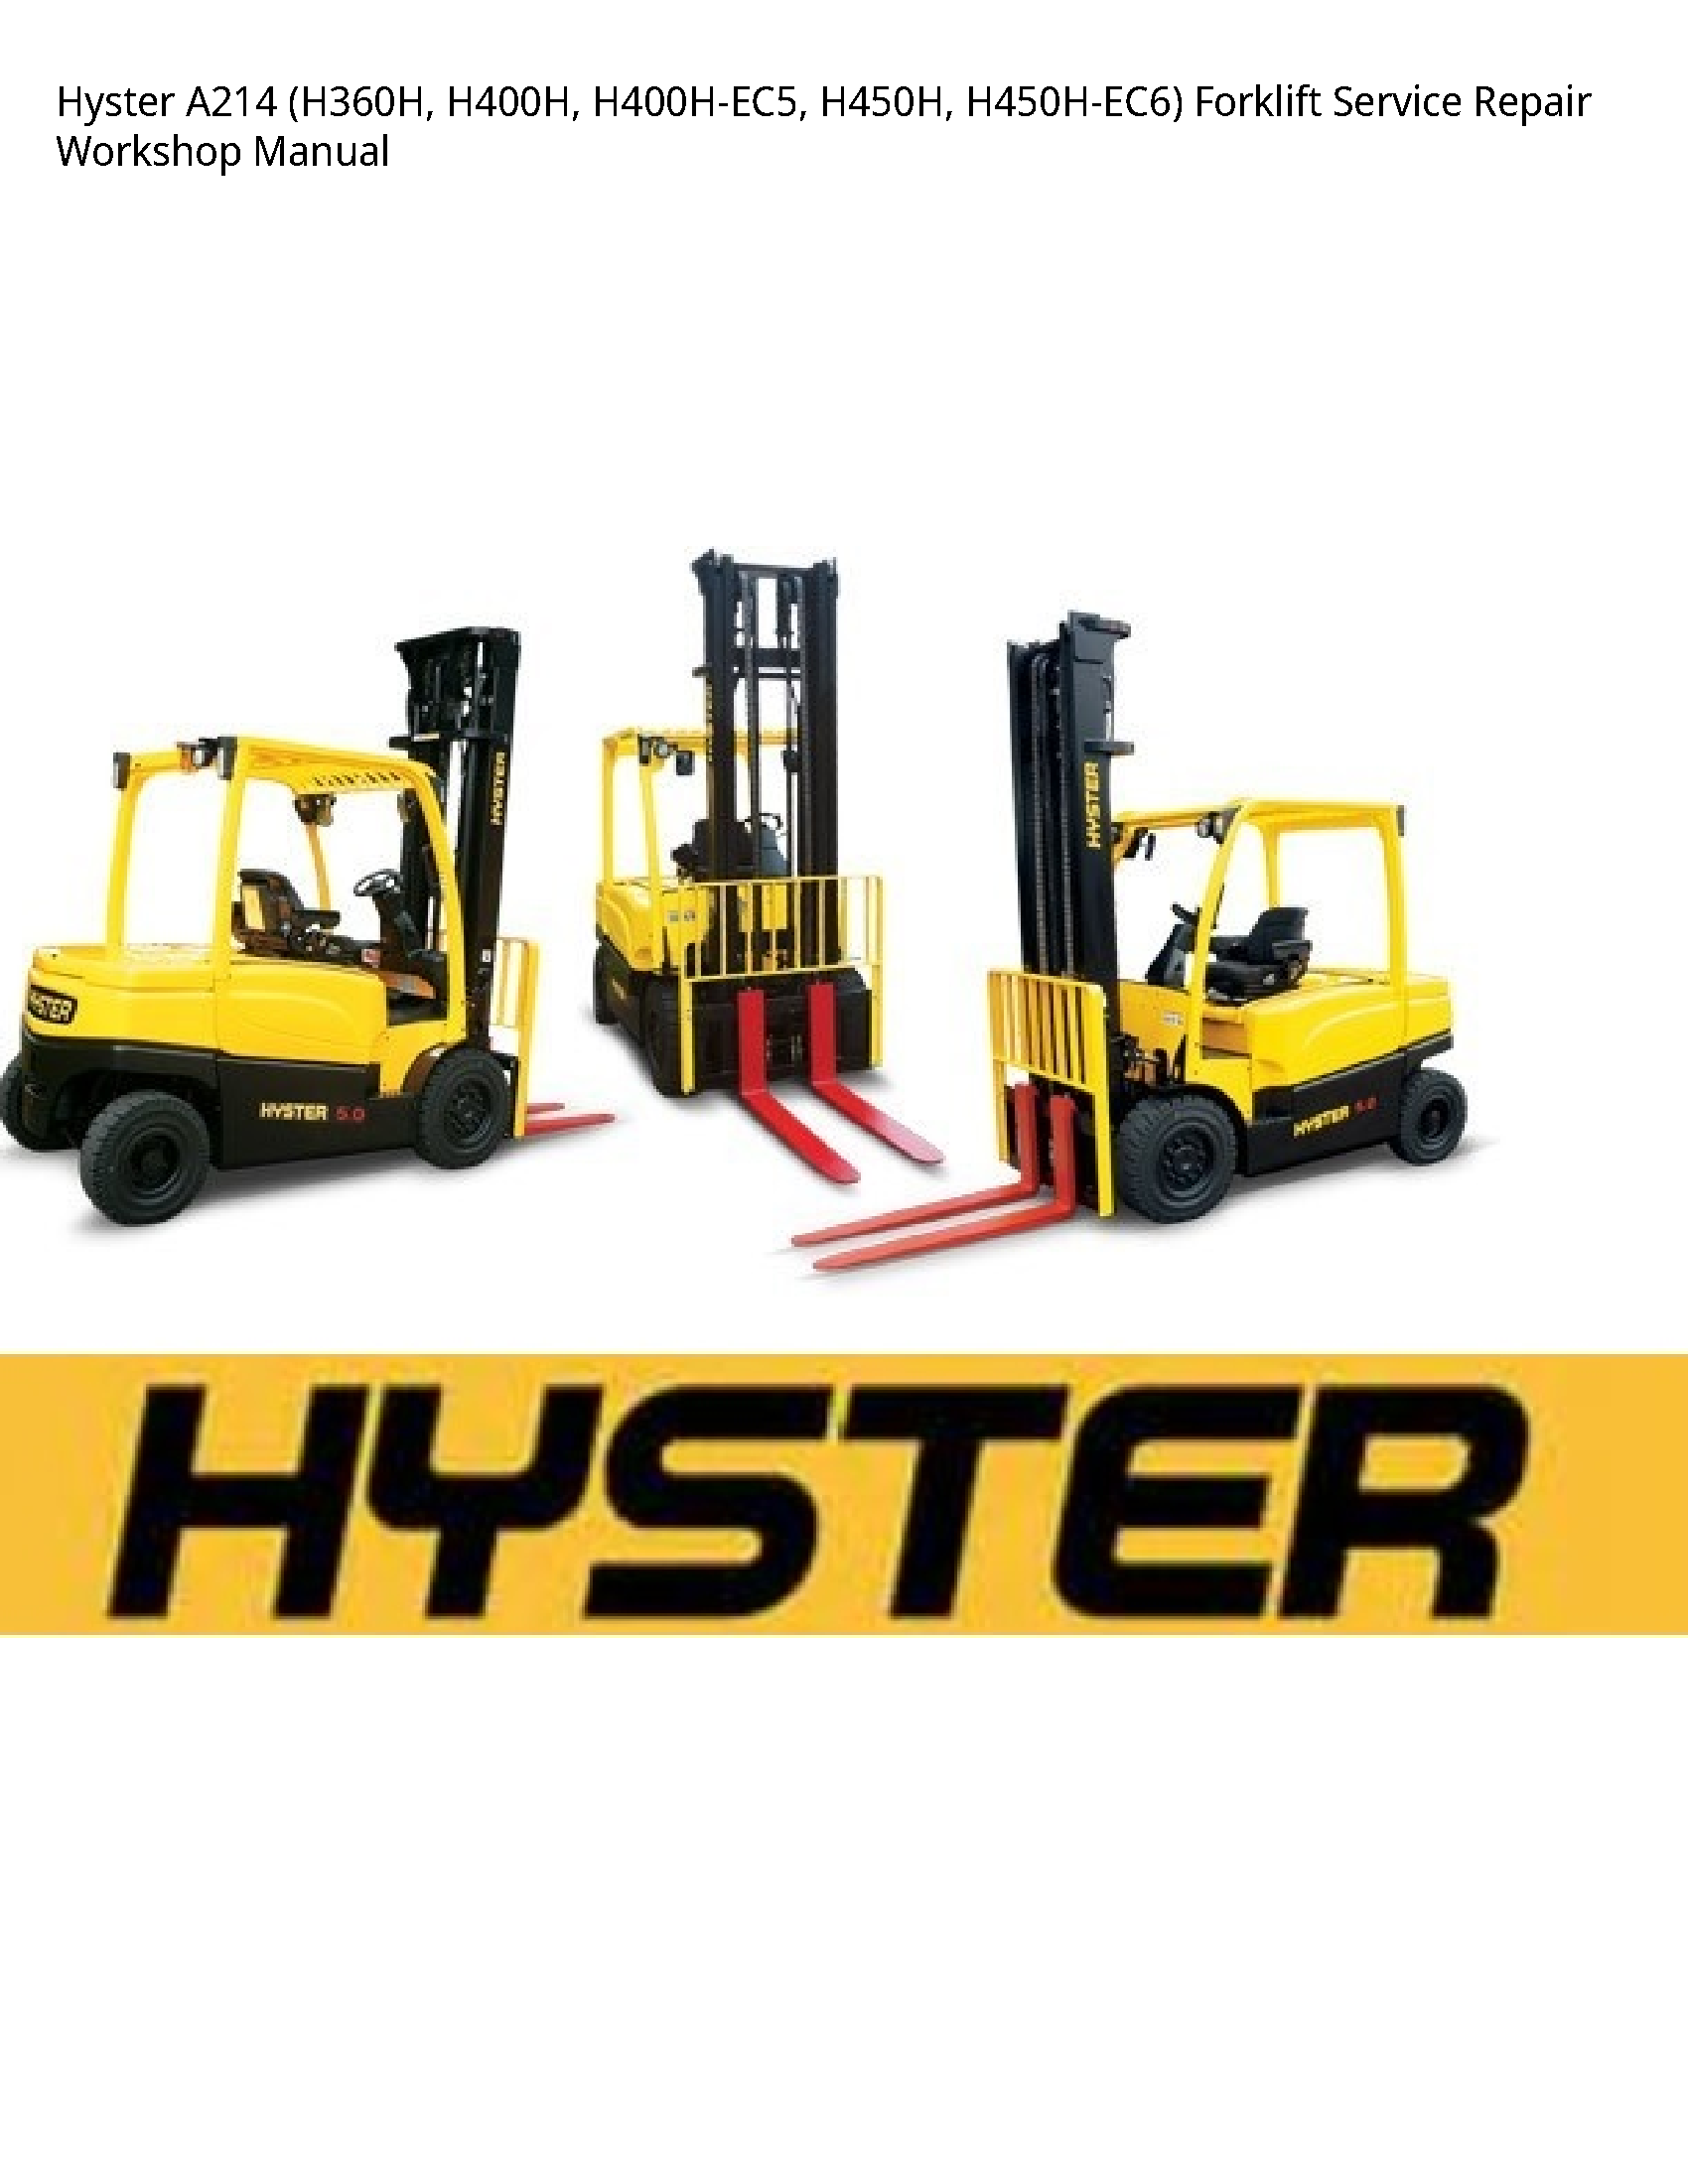 Hyster A214 Forklift manual